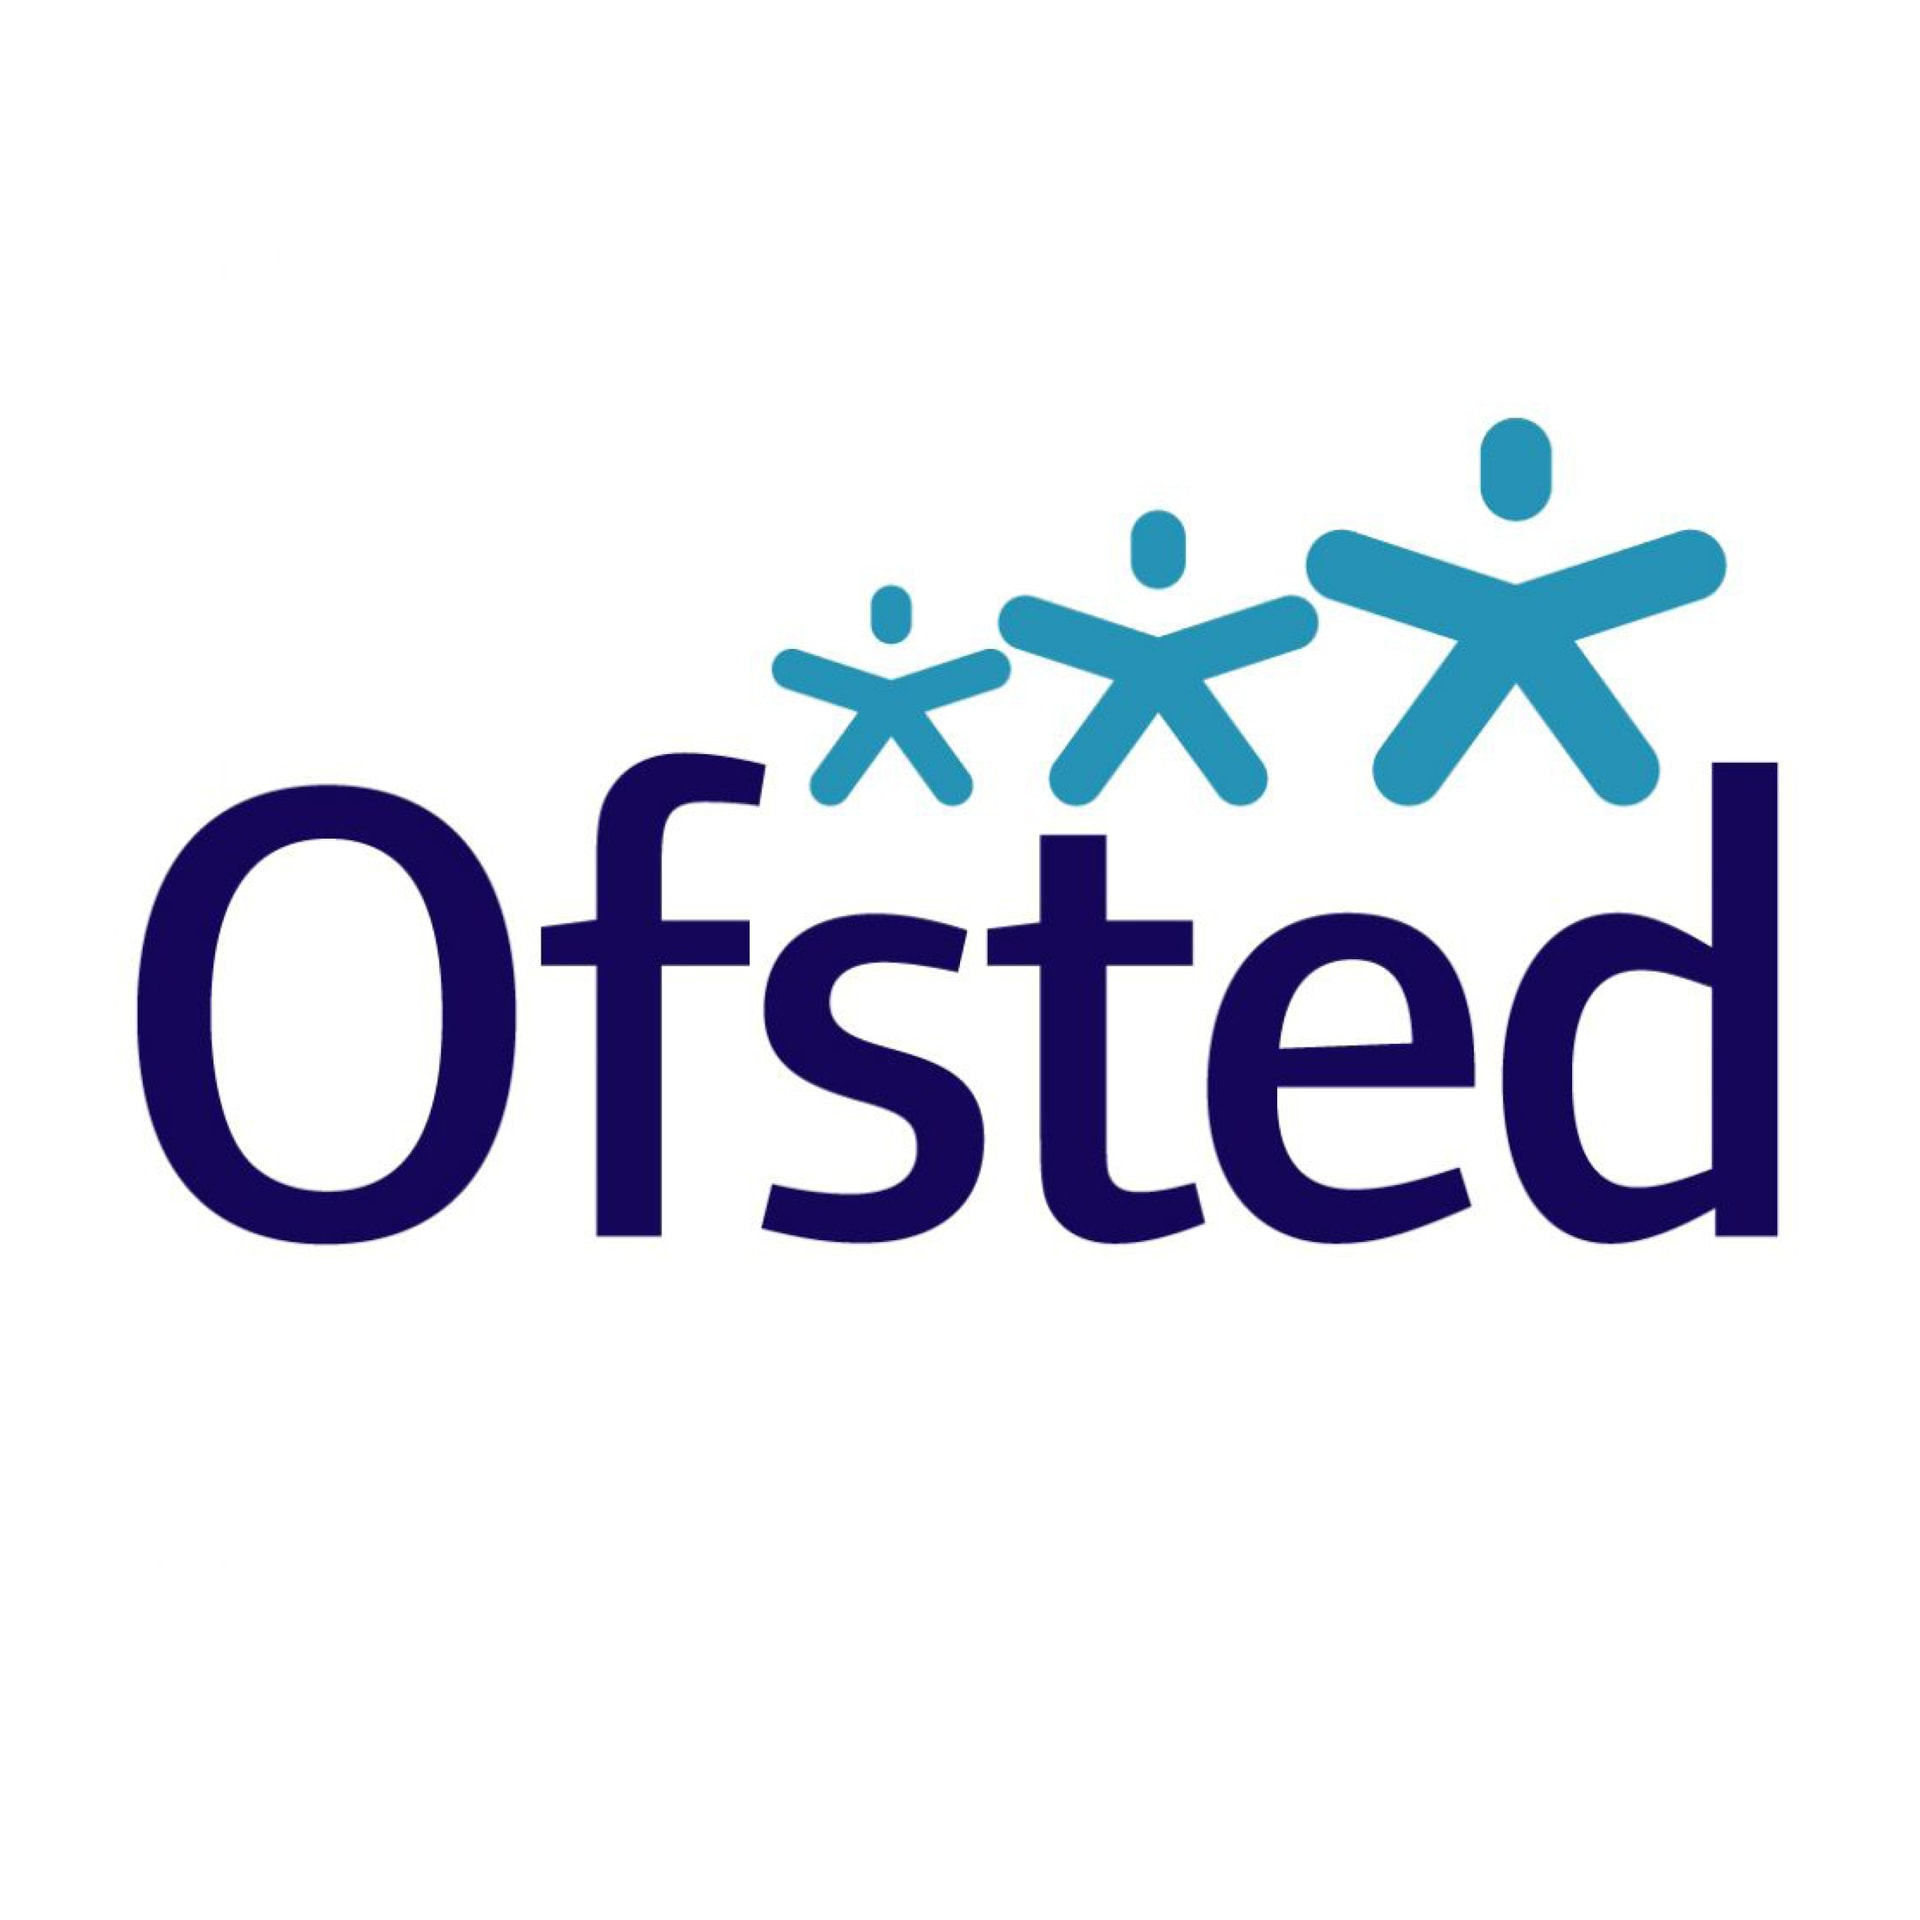 https://www.newchapterprimary.org.uk/wp-content/uploads/2020/11/Ofsted-logo.jpg